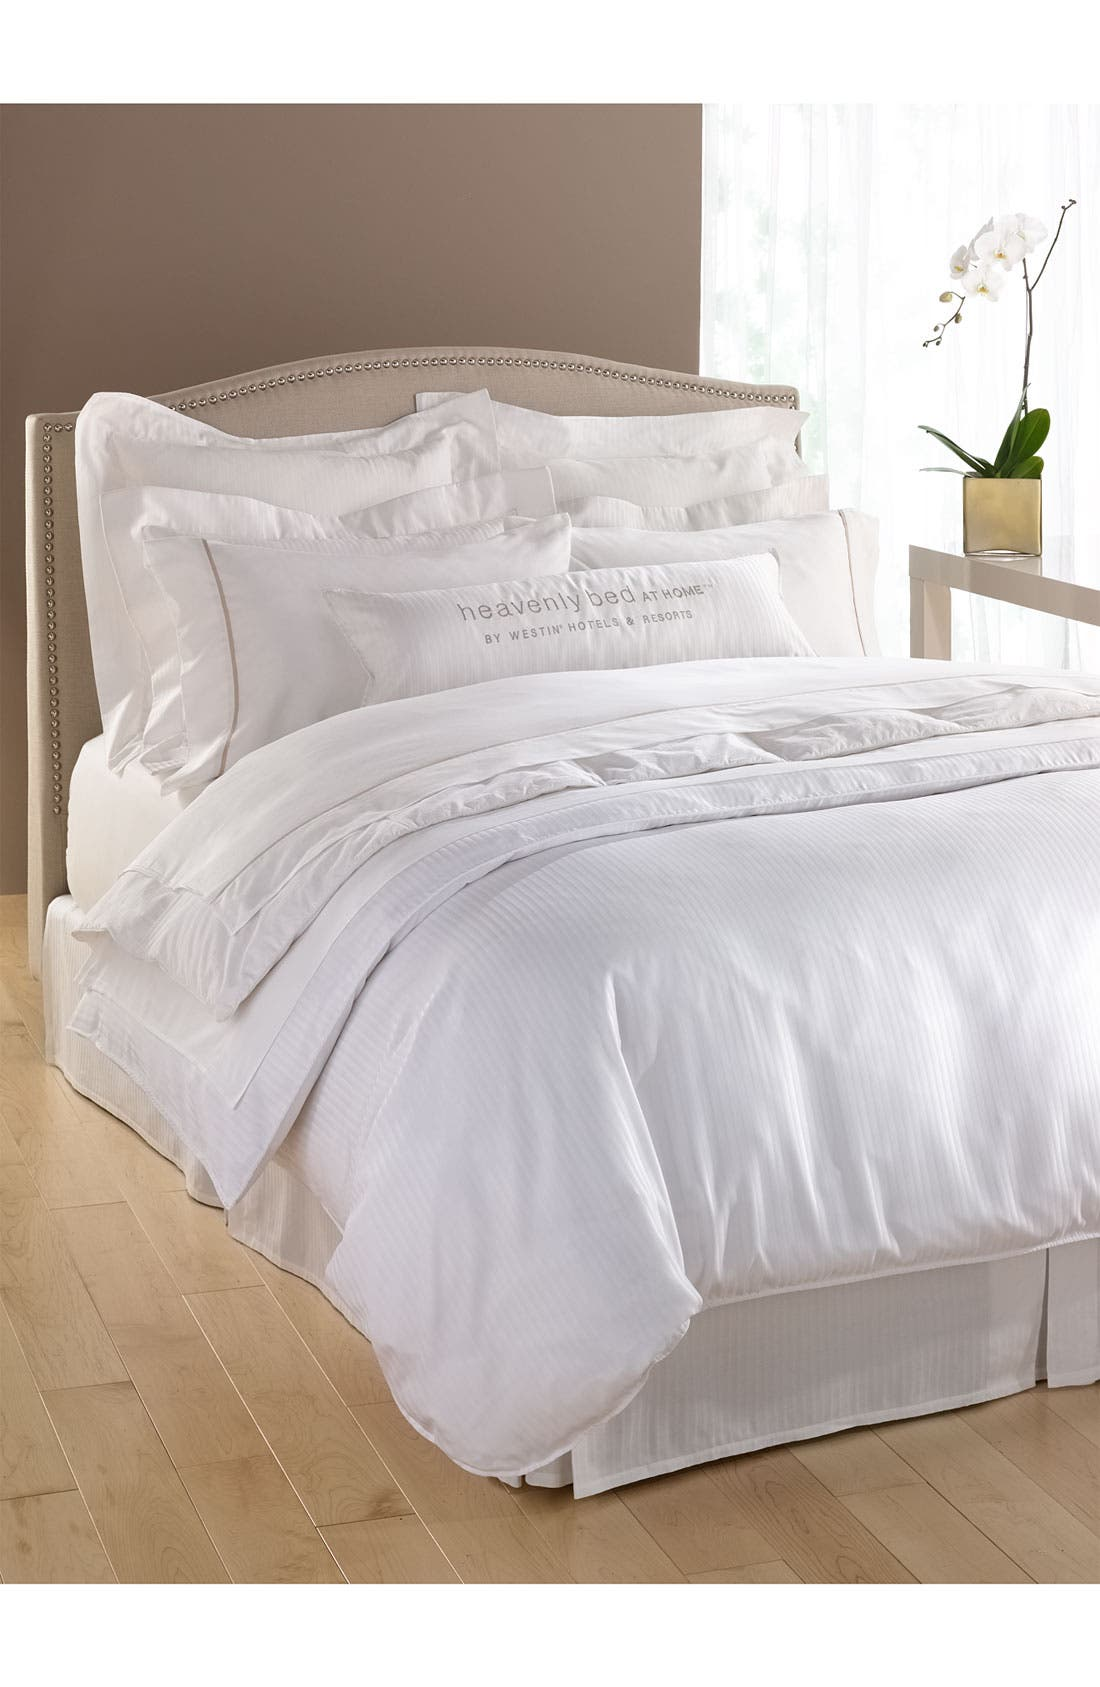 300 Thread Count Luxe Flat Sheet,                             Alternate thumbnail 2, color,                             WHI